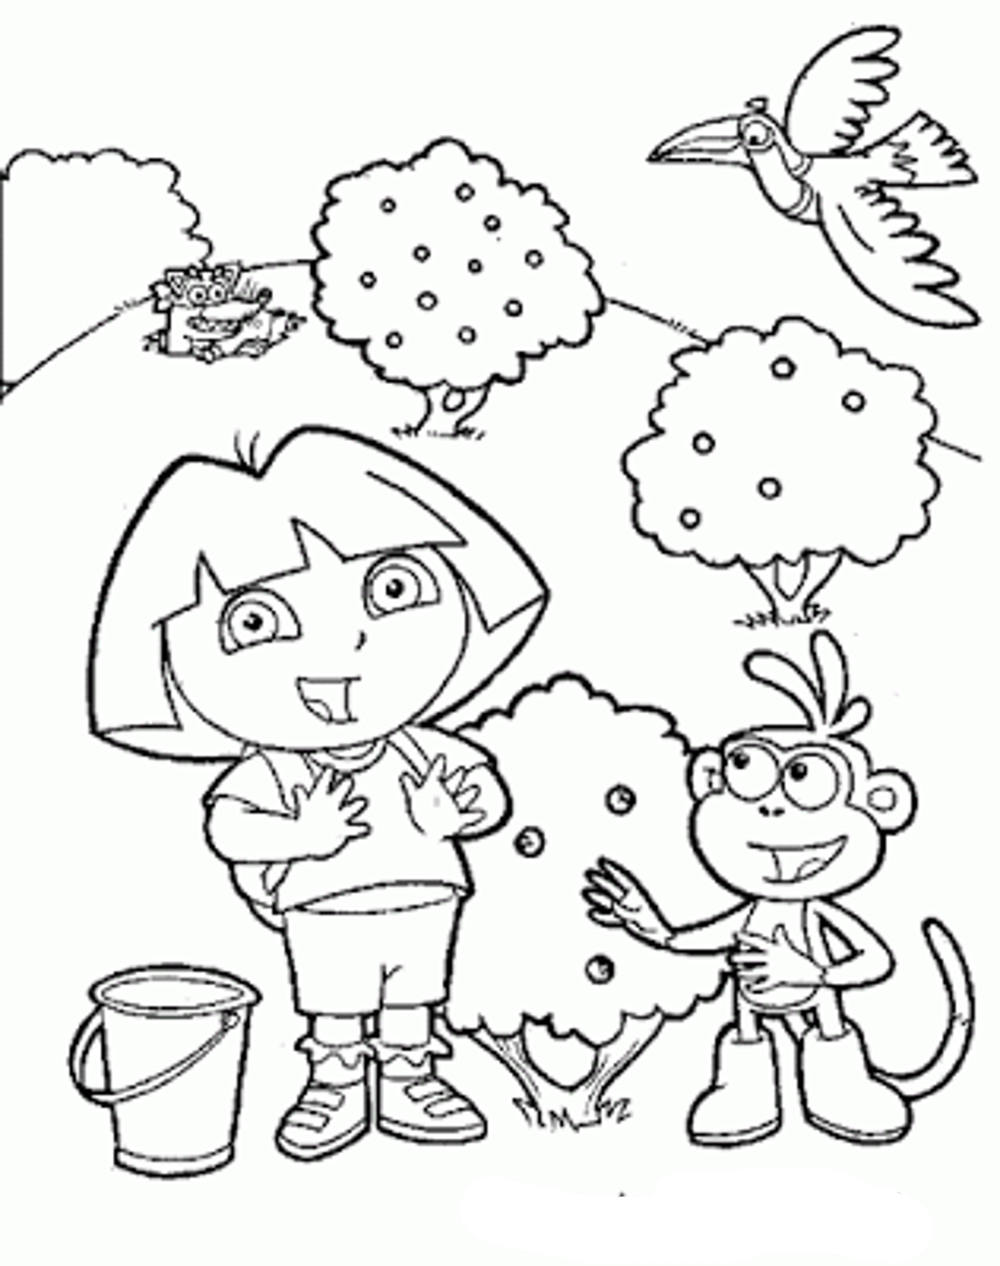 Dora Coloring Pages For Preschoolers